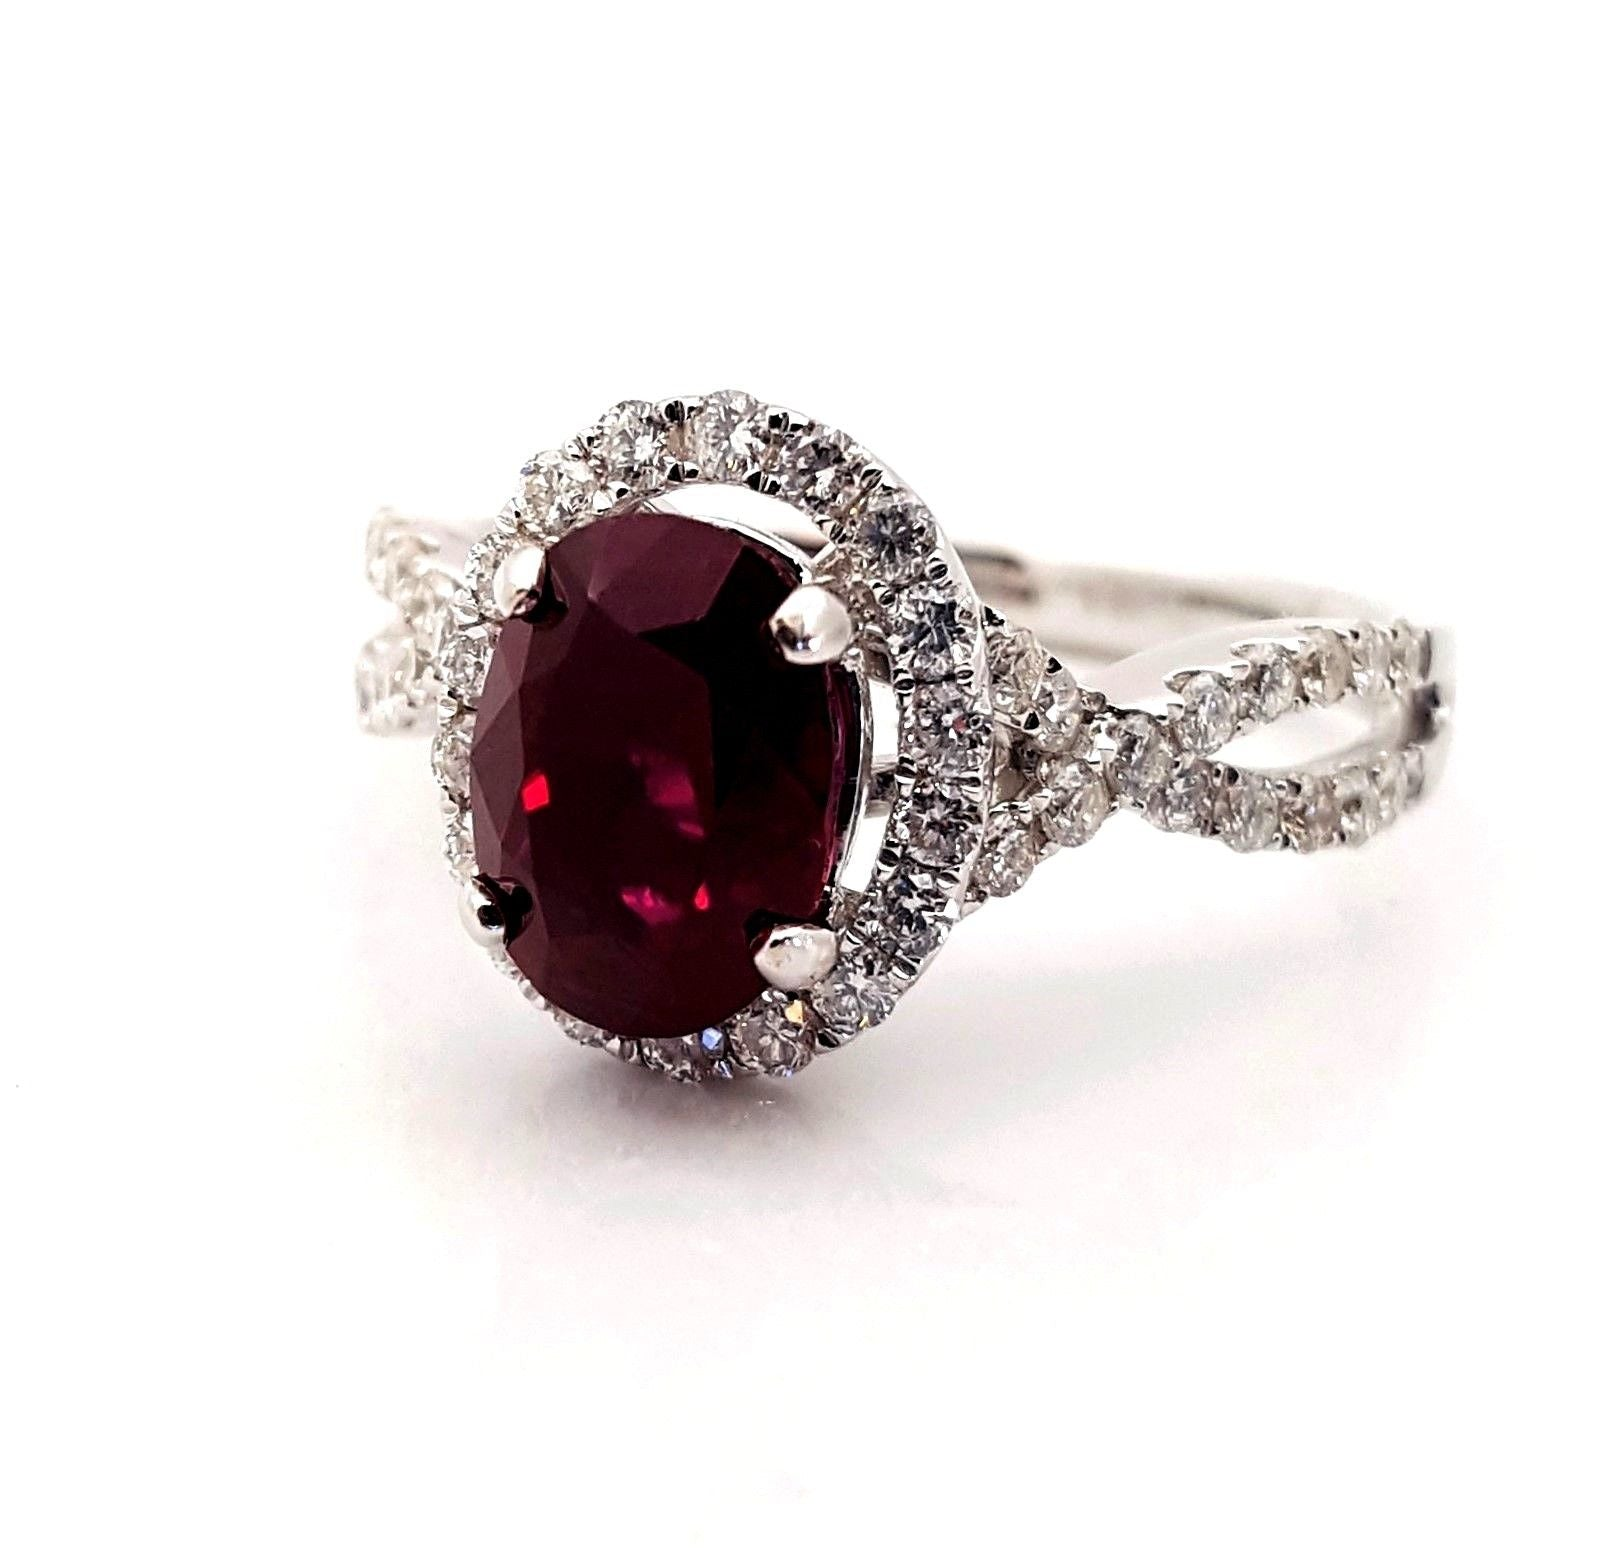 rings the ring crop jewellery break false fluted know natural scale subsampling tradition from upscale a faberg pave bridal ruby with non how diamond engagement